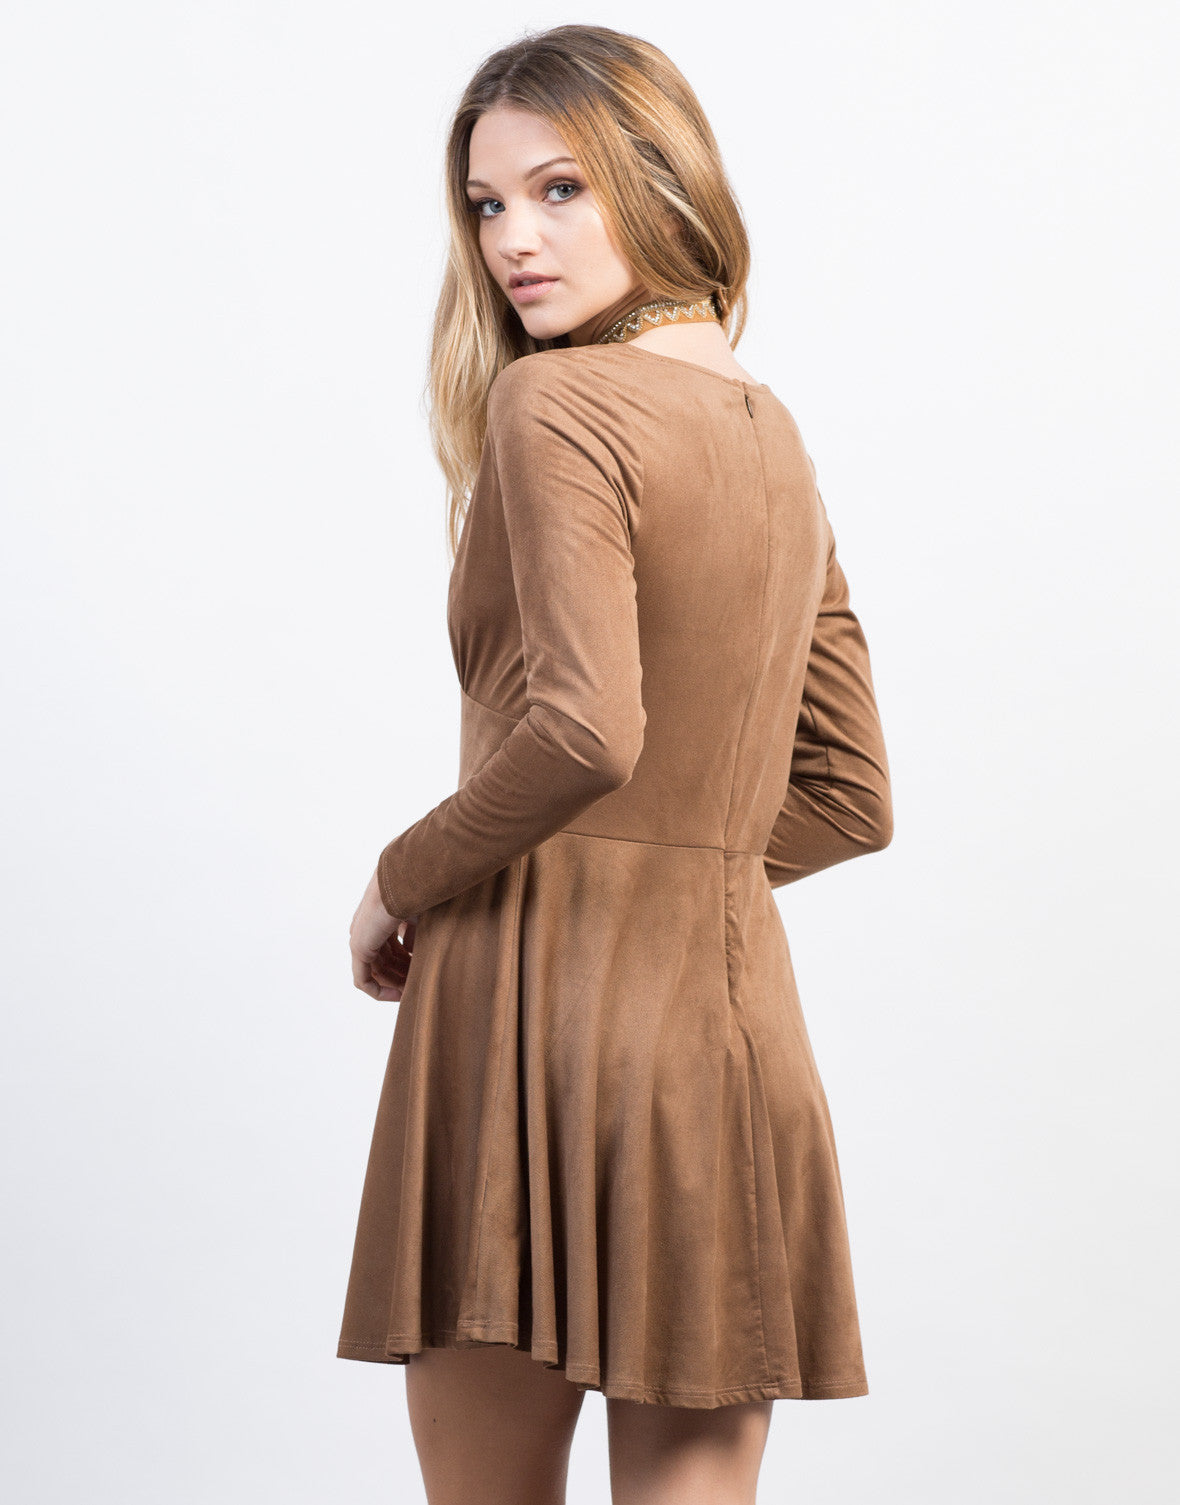 Back View of Suede Buttoned Dress